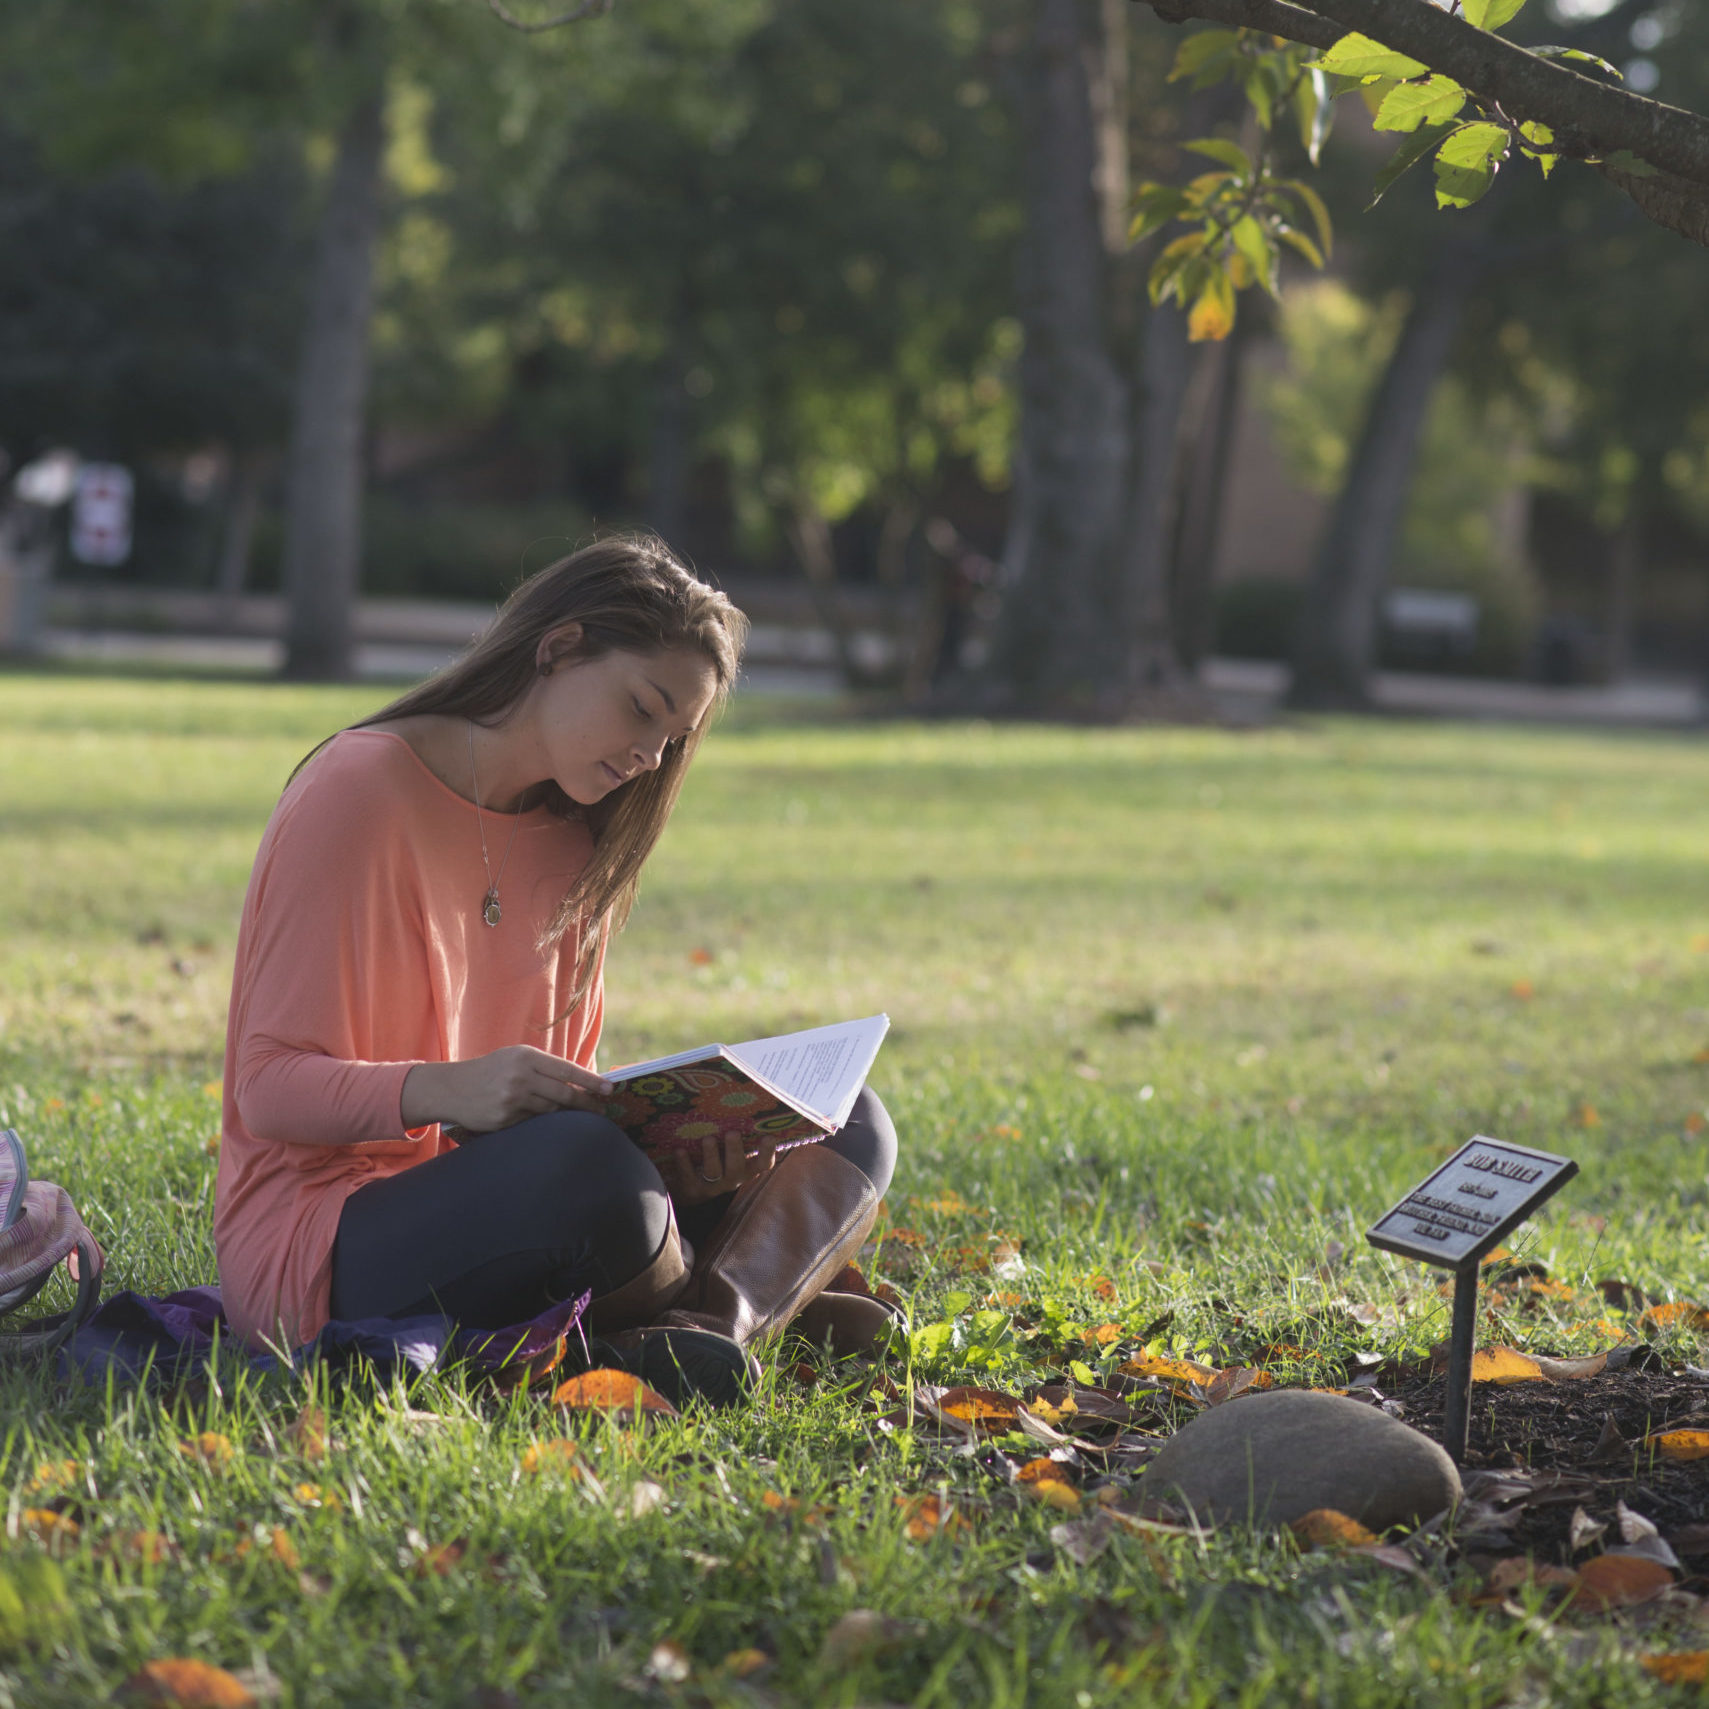 Student sitting under a tree and reading